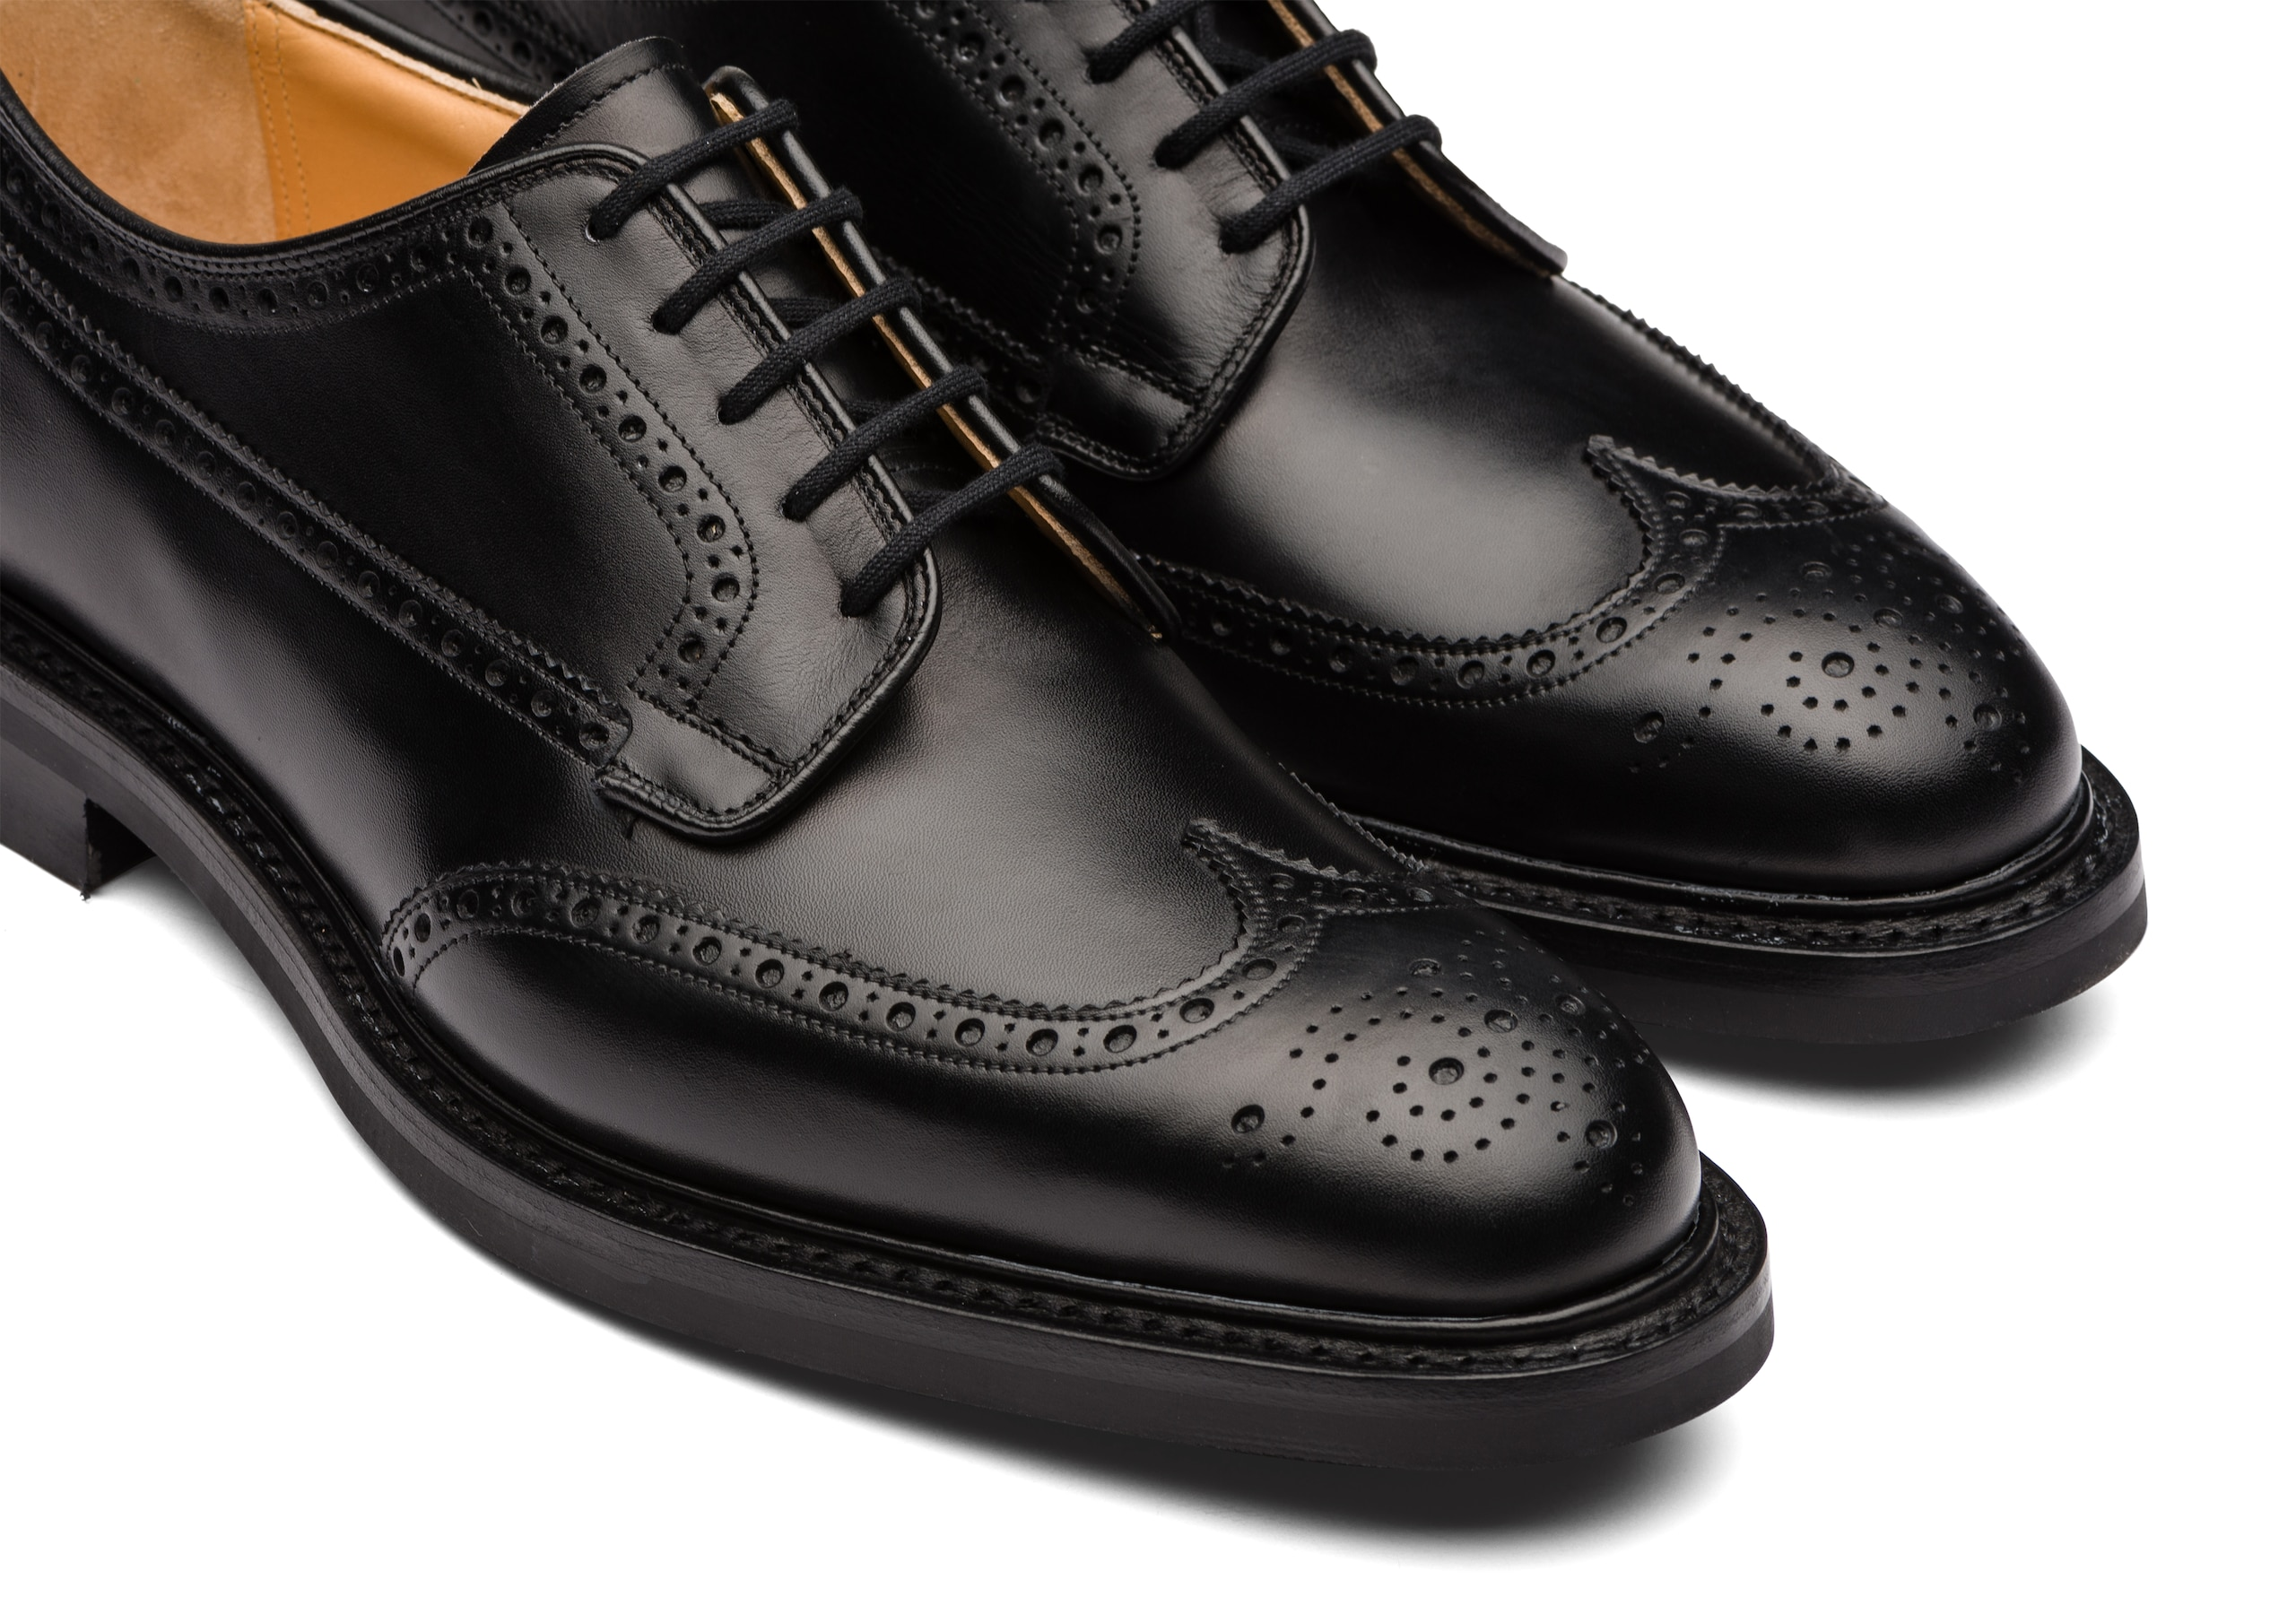 Grafton r Church's Calf Leather Derby Brogue Black